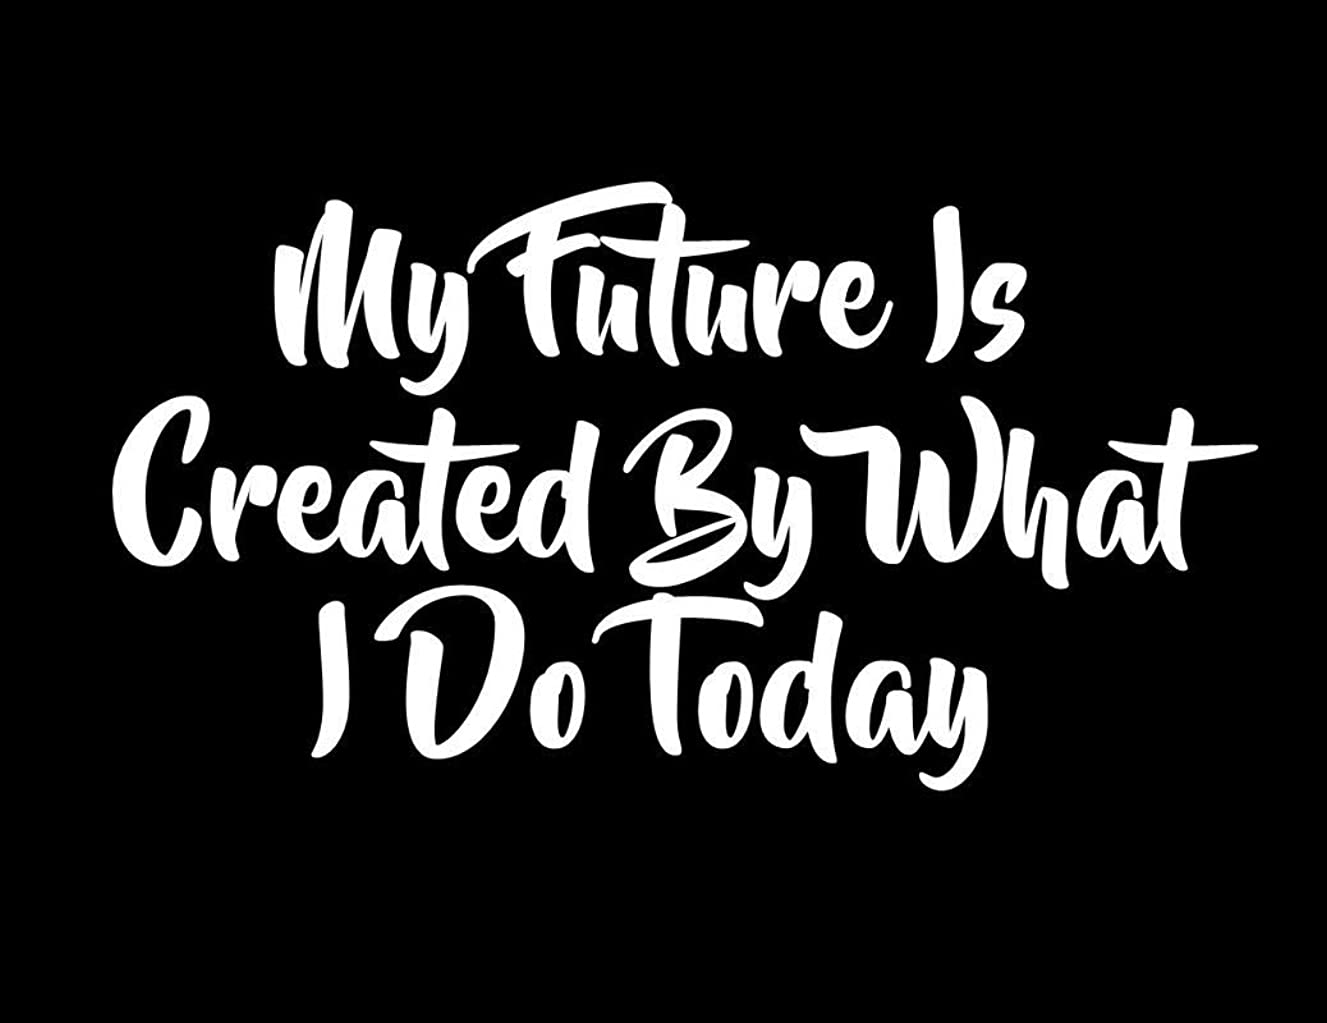 My Future is Created by What I Do Today CCI Decal Vinyl Sticker|Cars Trucks Vans Walls Laptop| White|5.0 x 3.0 in|CCI2268